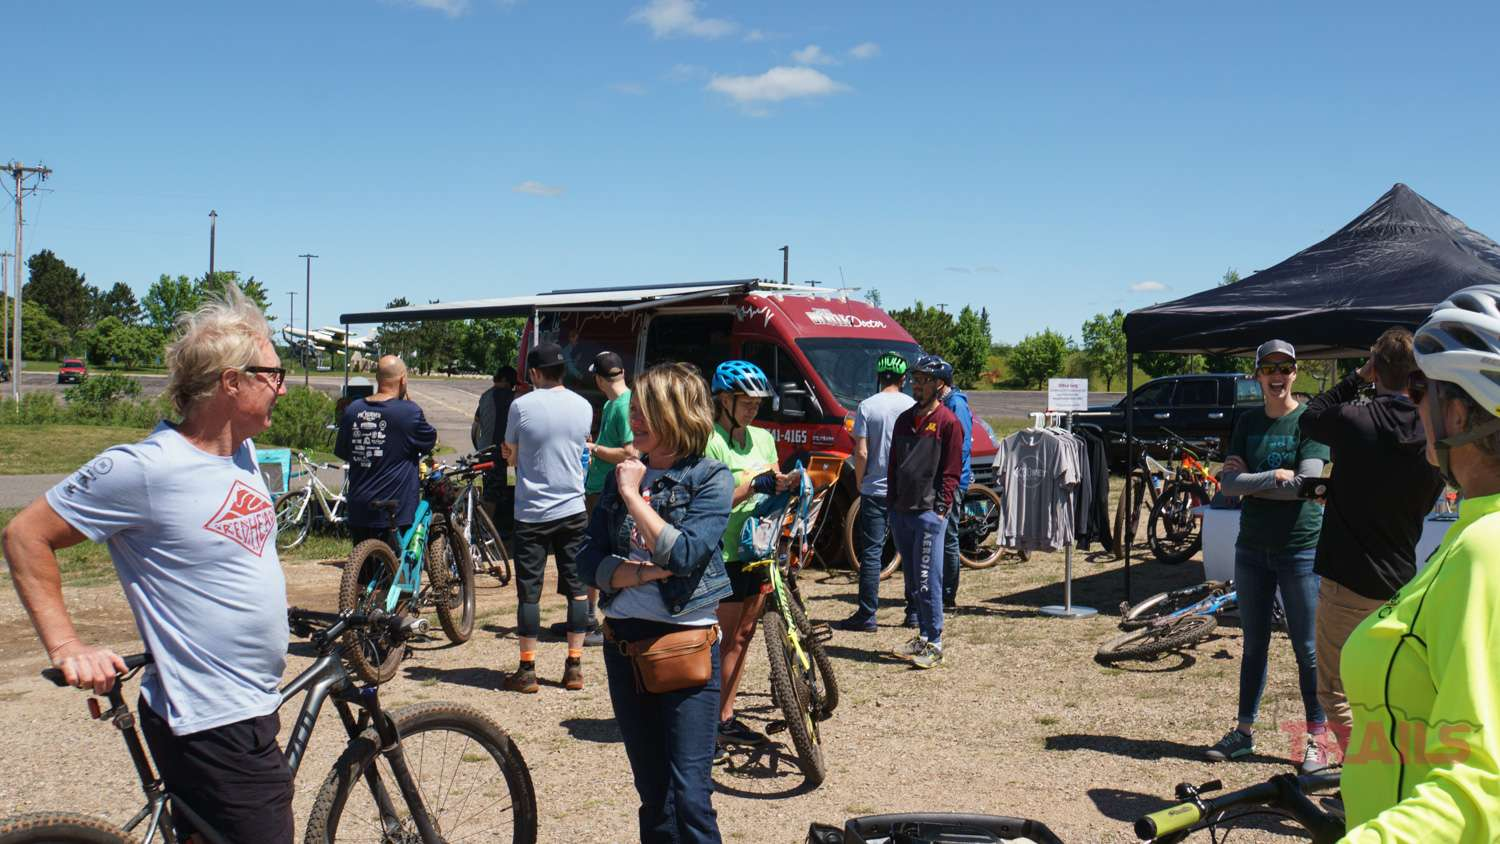 Crowd of mountain bikers